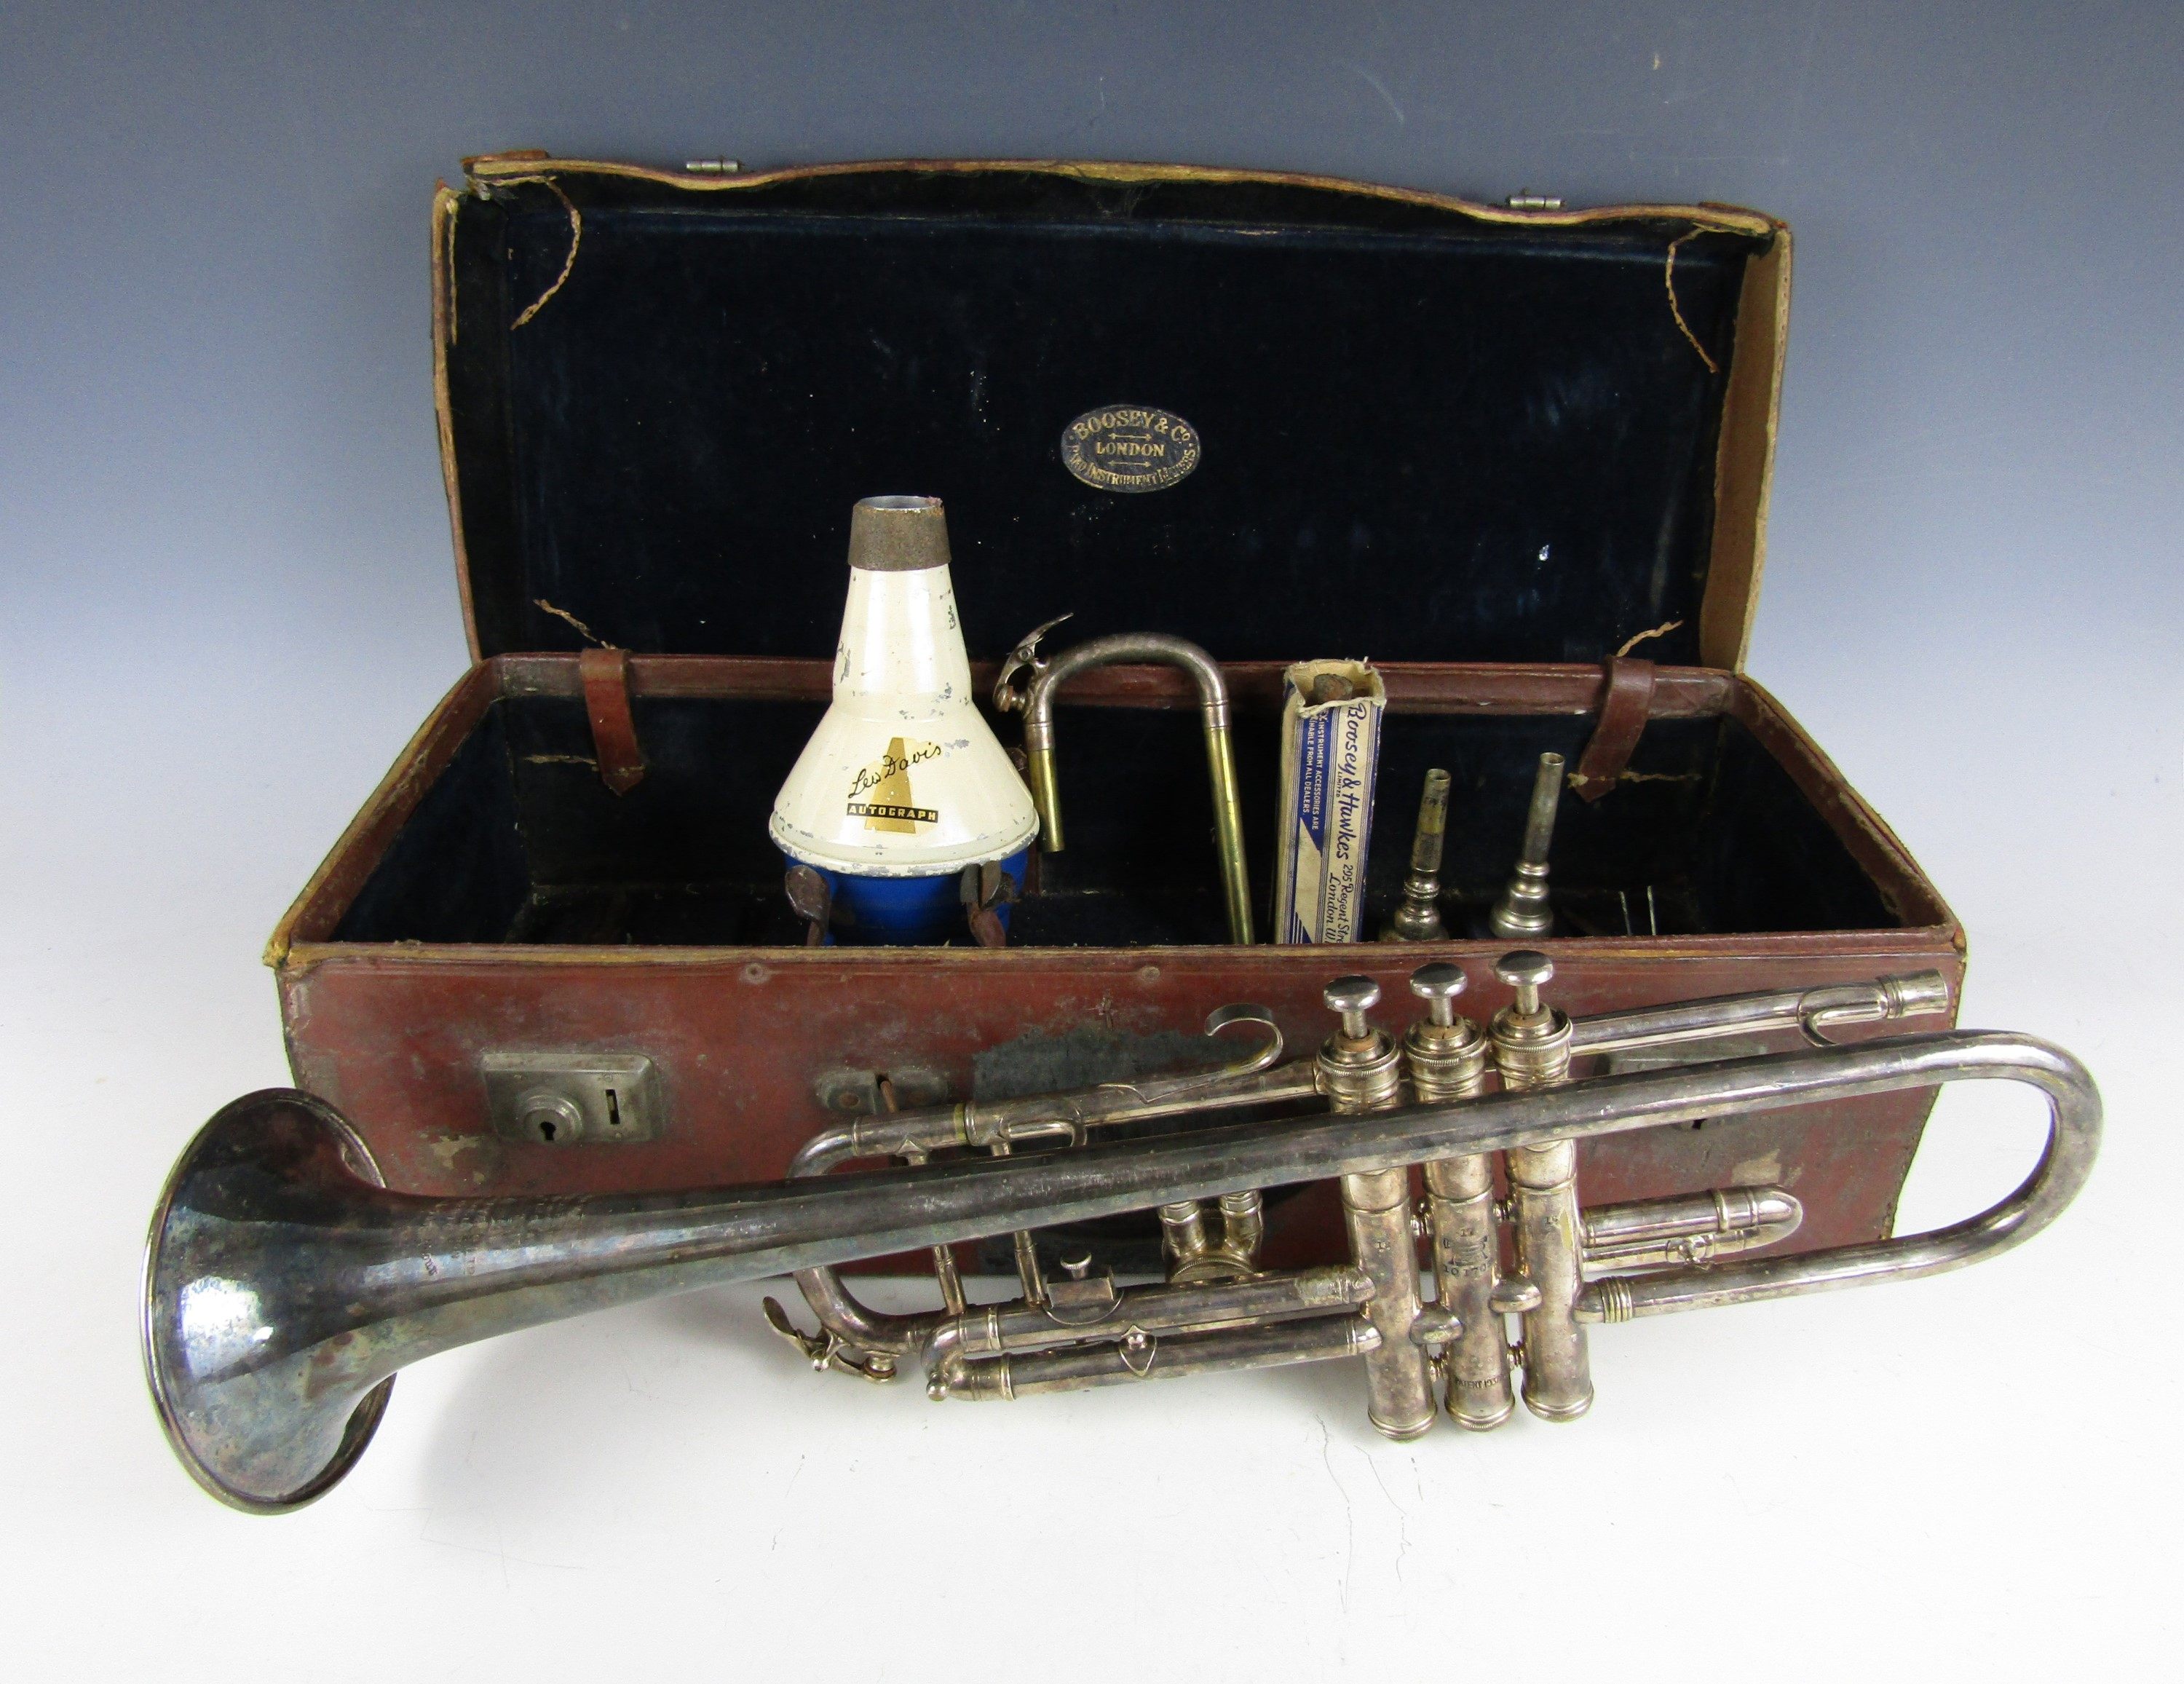 Lot 32 - A cased Boosey and Hawkes silver plated trumpet, patent No. 193729